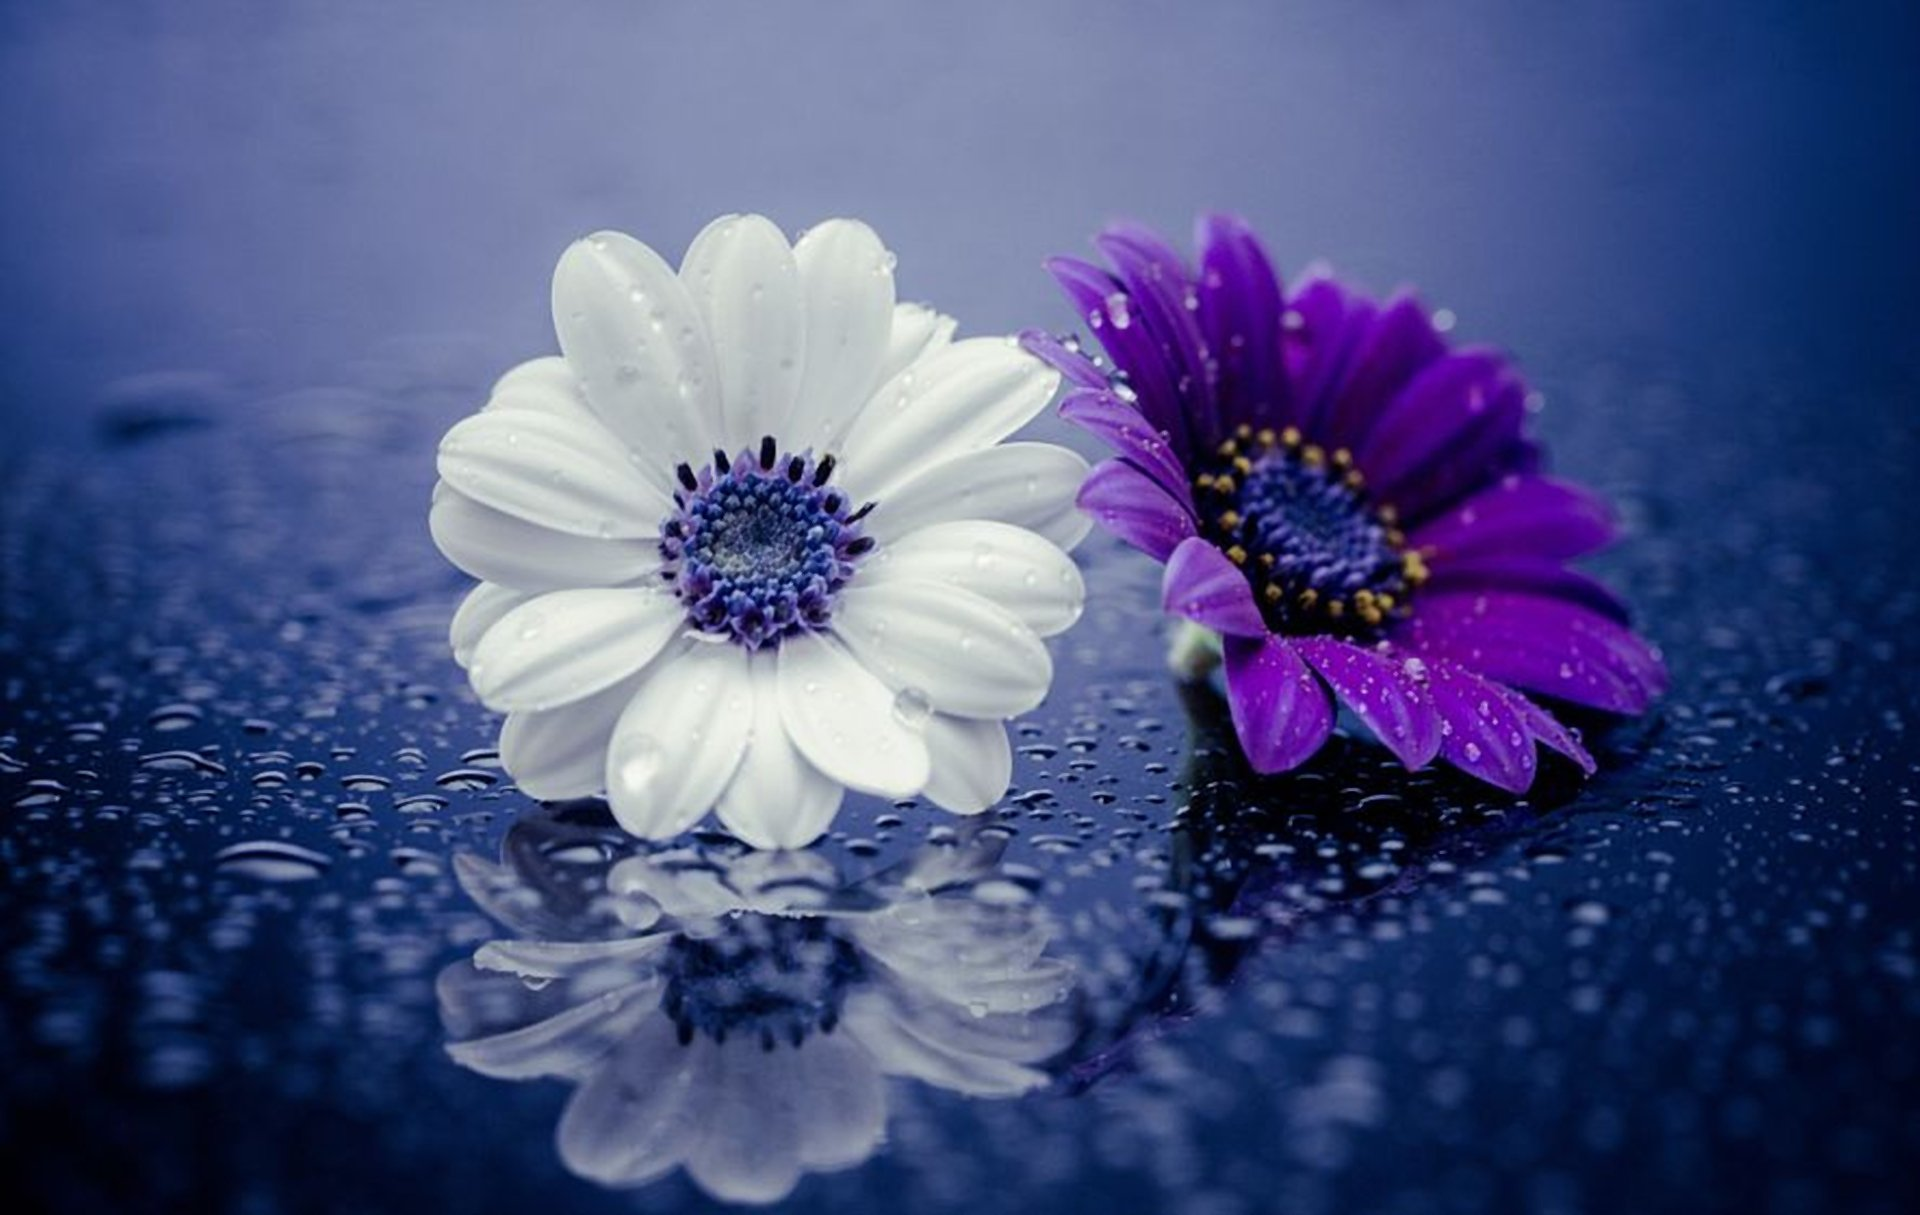 Earth - Daisy  White Flower Flower Purple Flower Water Drop Close-Up Wallpaper